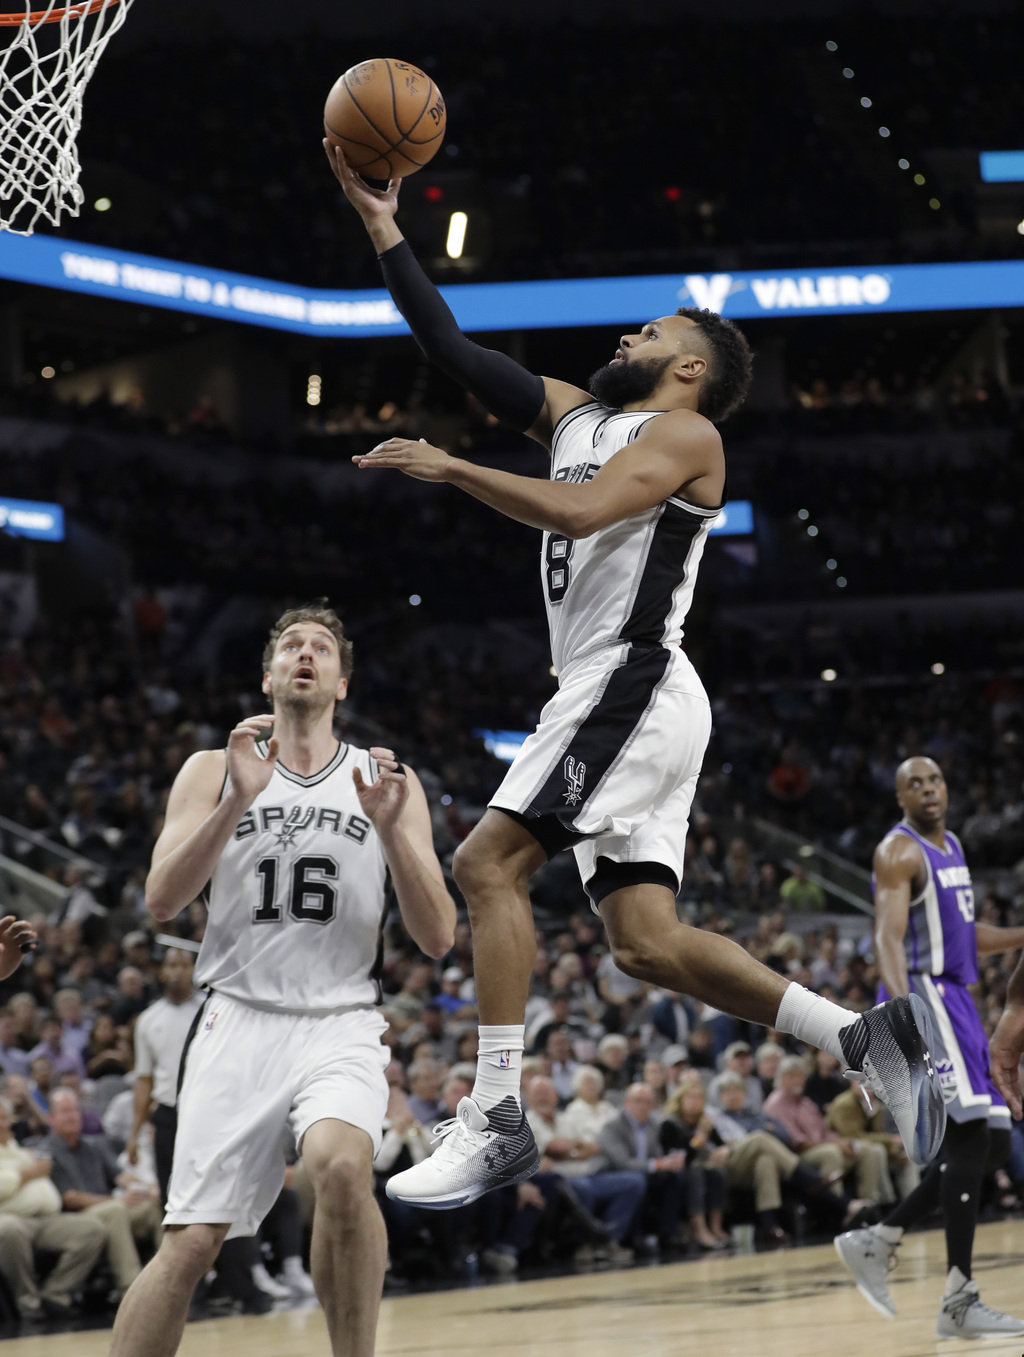 San Antonio Spurs guard Patty Mills (8) drives to the basket past teammate Pau Gasol (16) during the second half of the team's NBA bask...